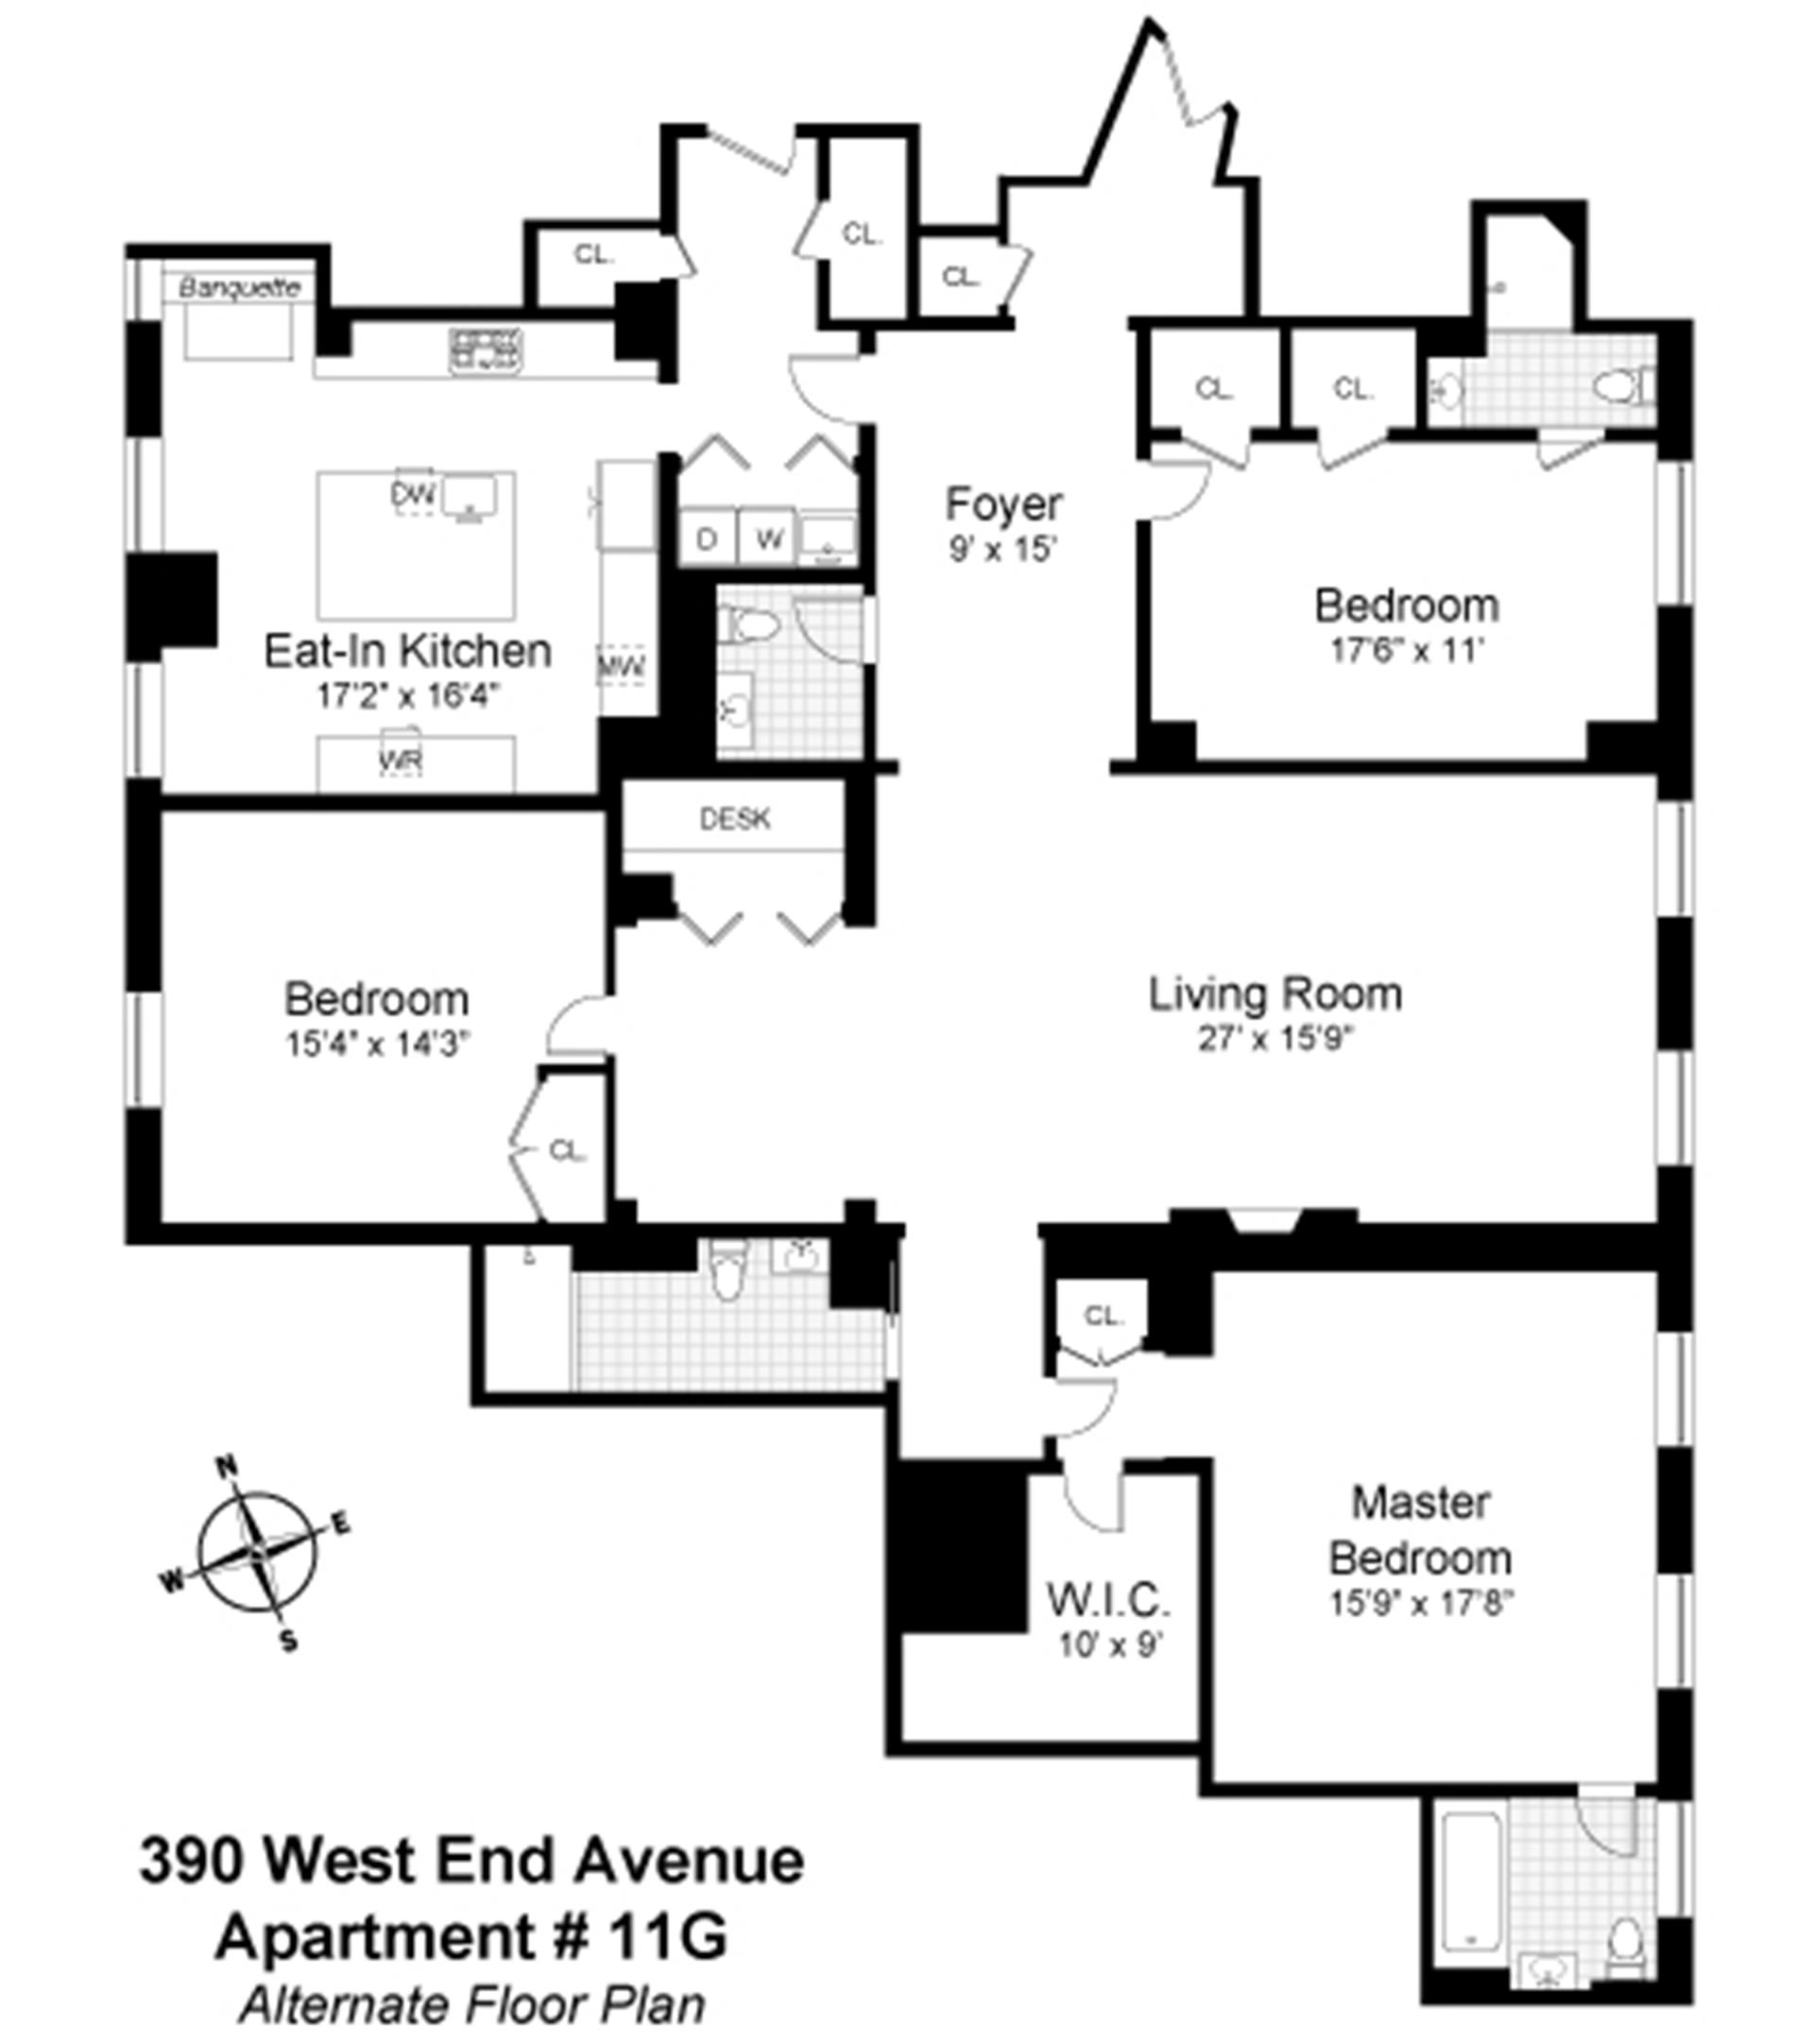 Floor plan of The Apthorp, 390 West End Avenue, 11G - Upper West Side, New York